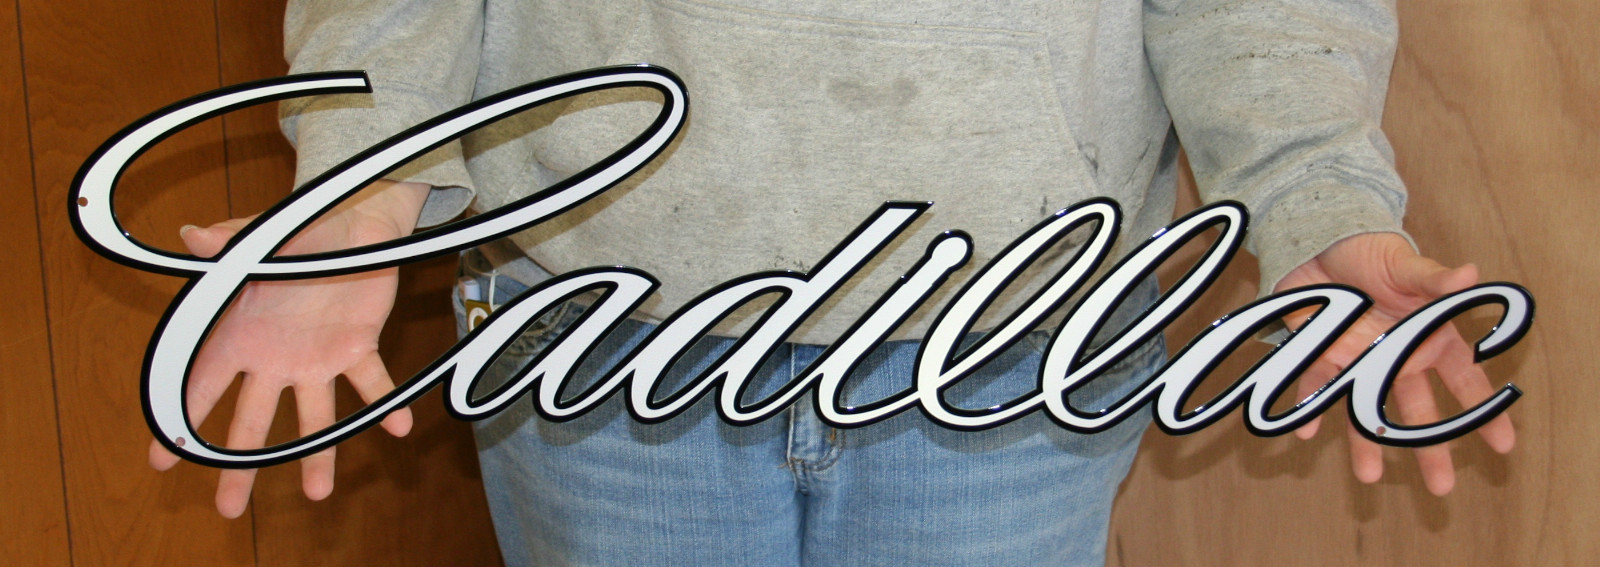 Cadillac Script Emblem sign - Click Image to Close